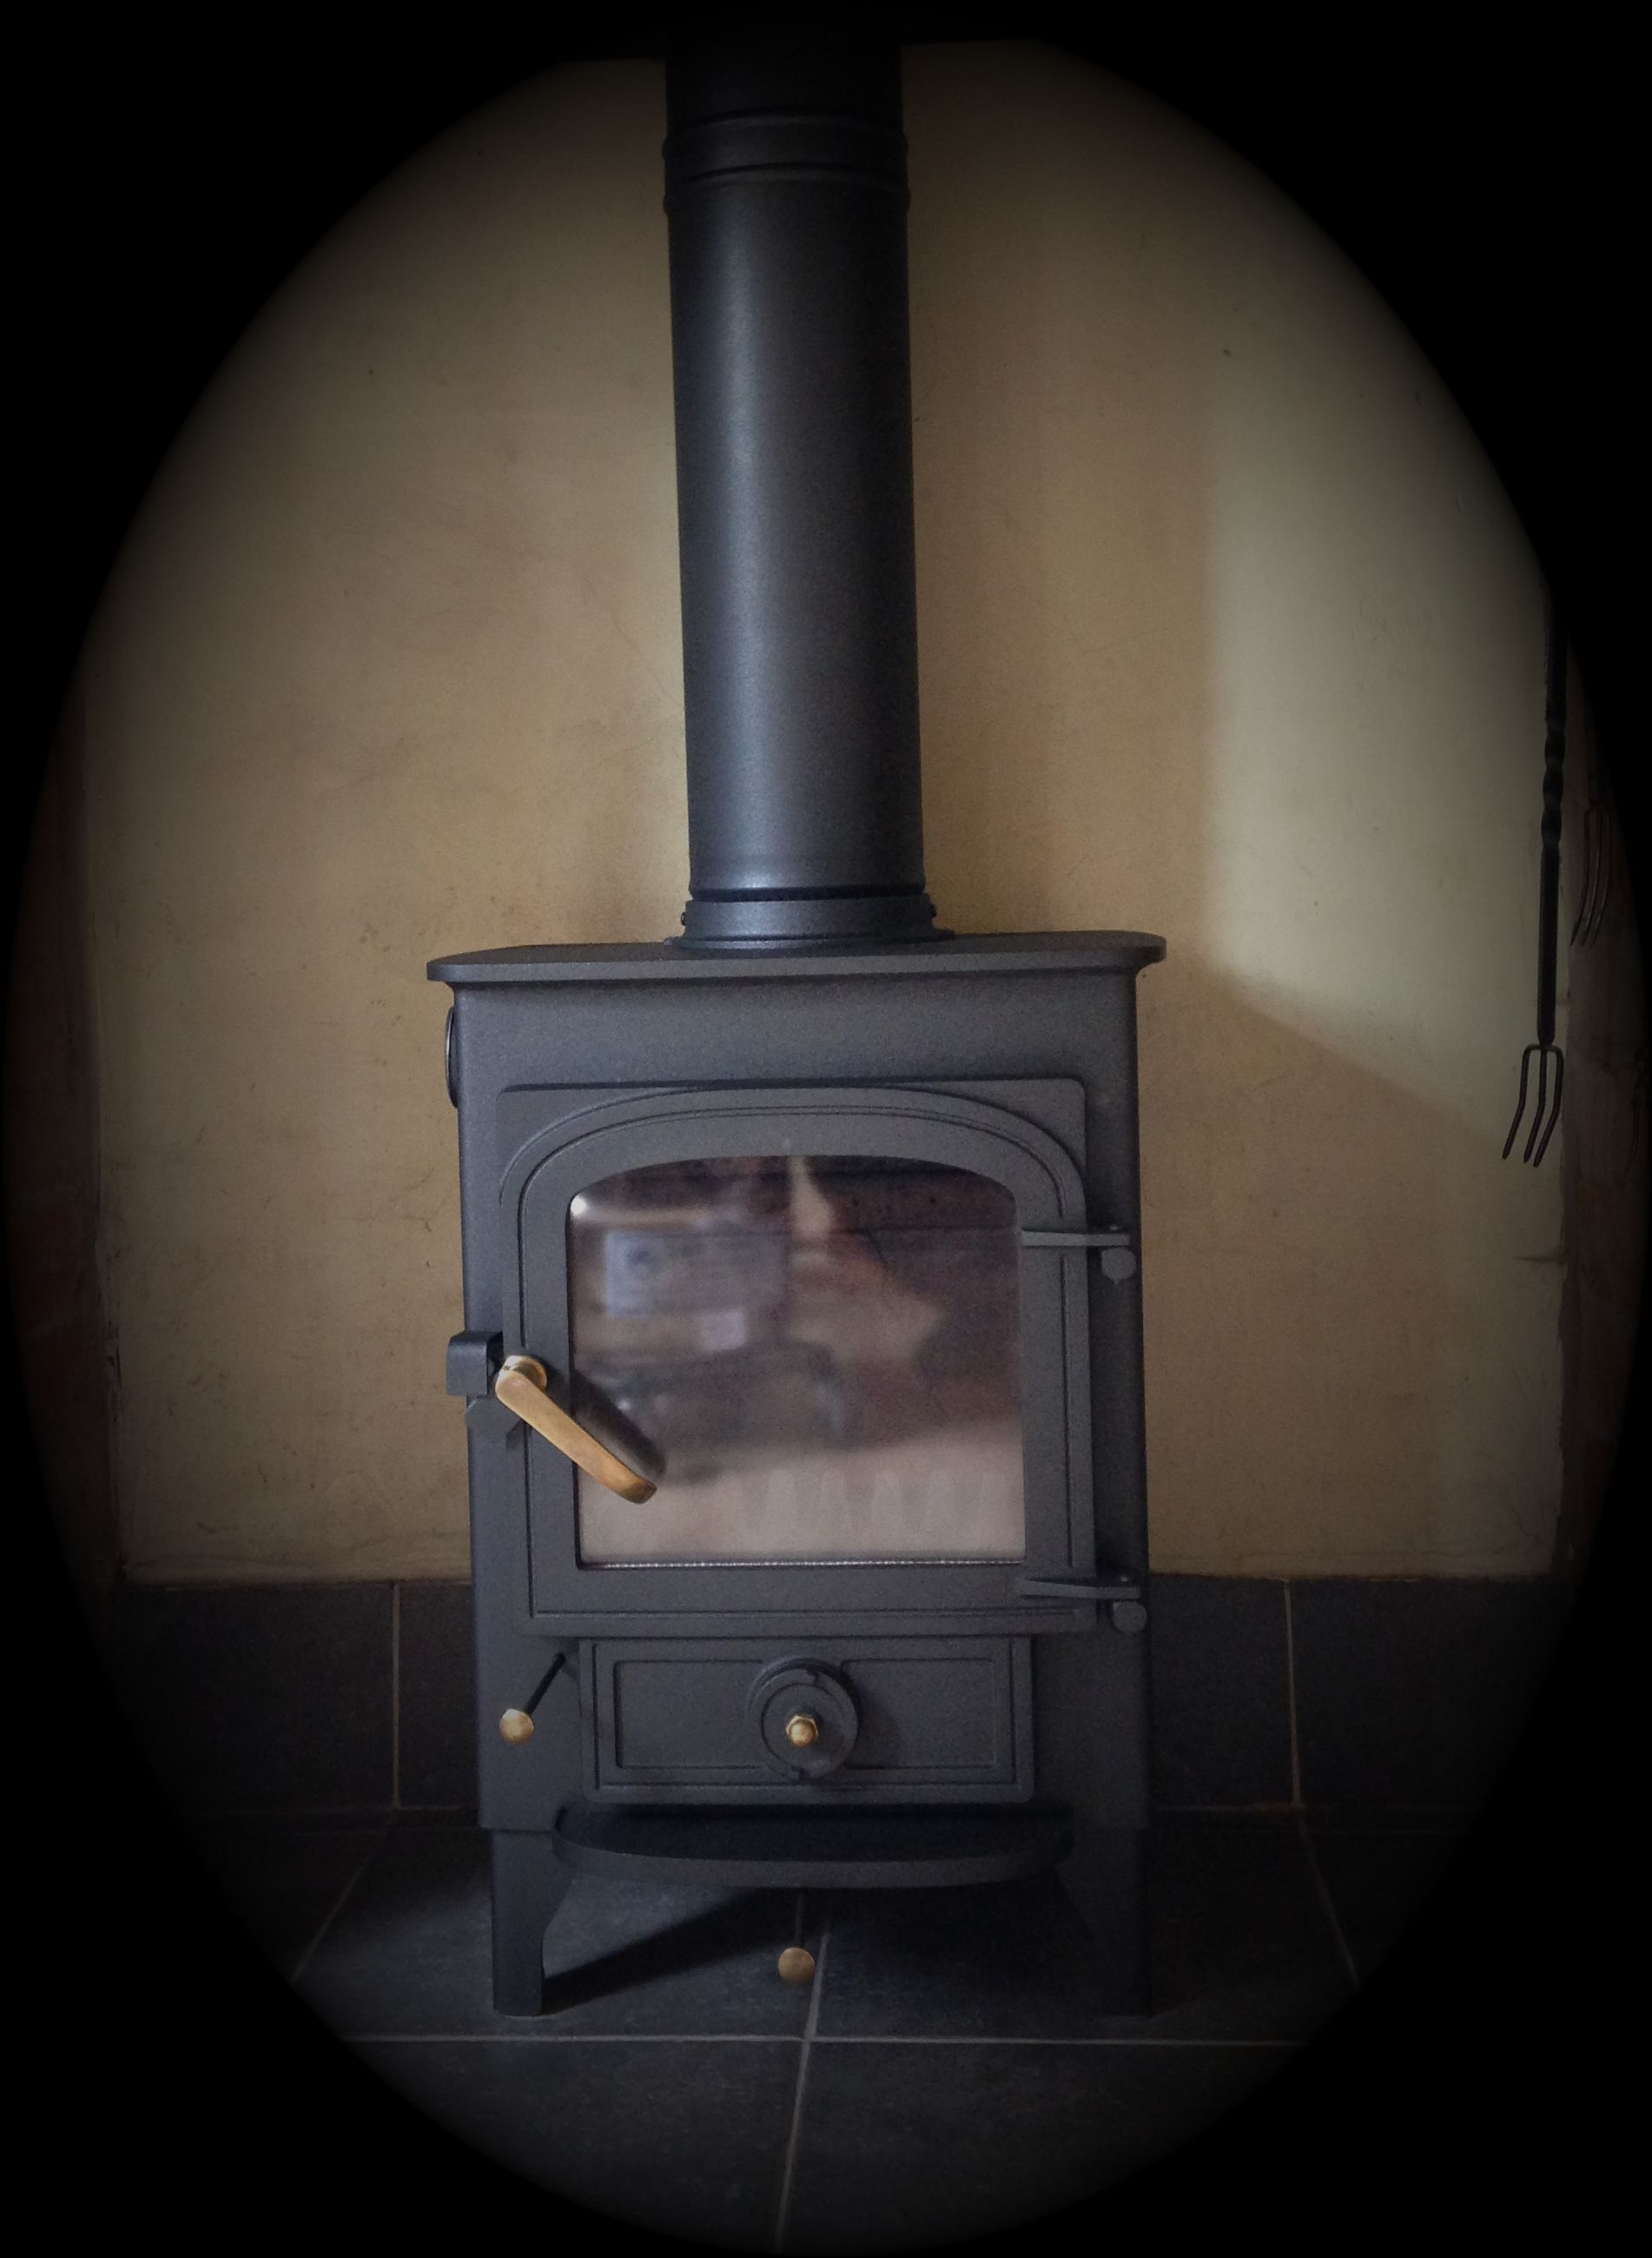 The Derbyshire Chimney Sweep